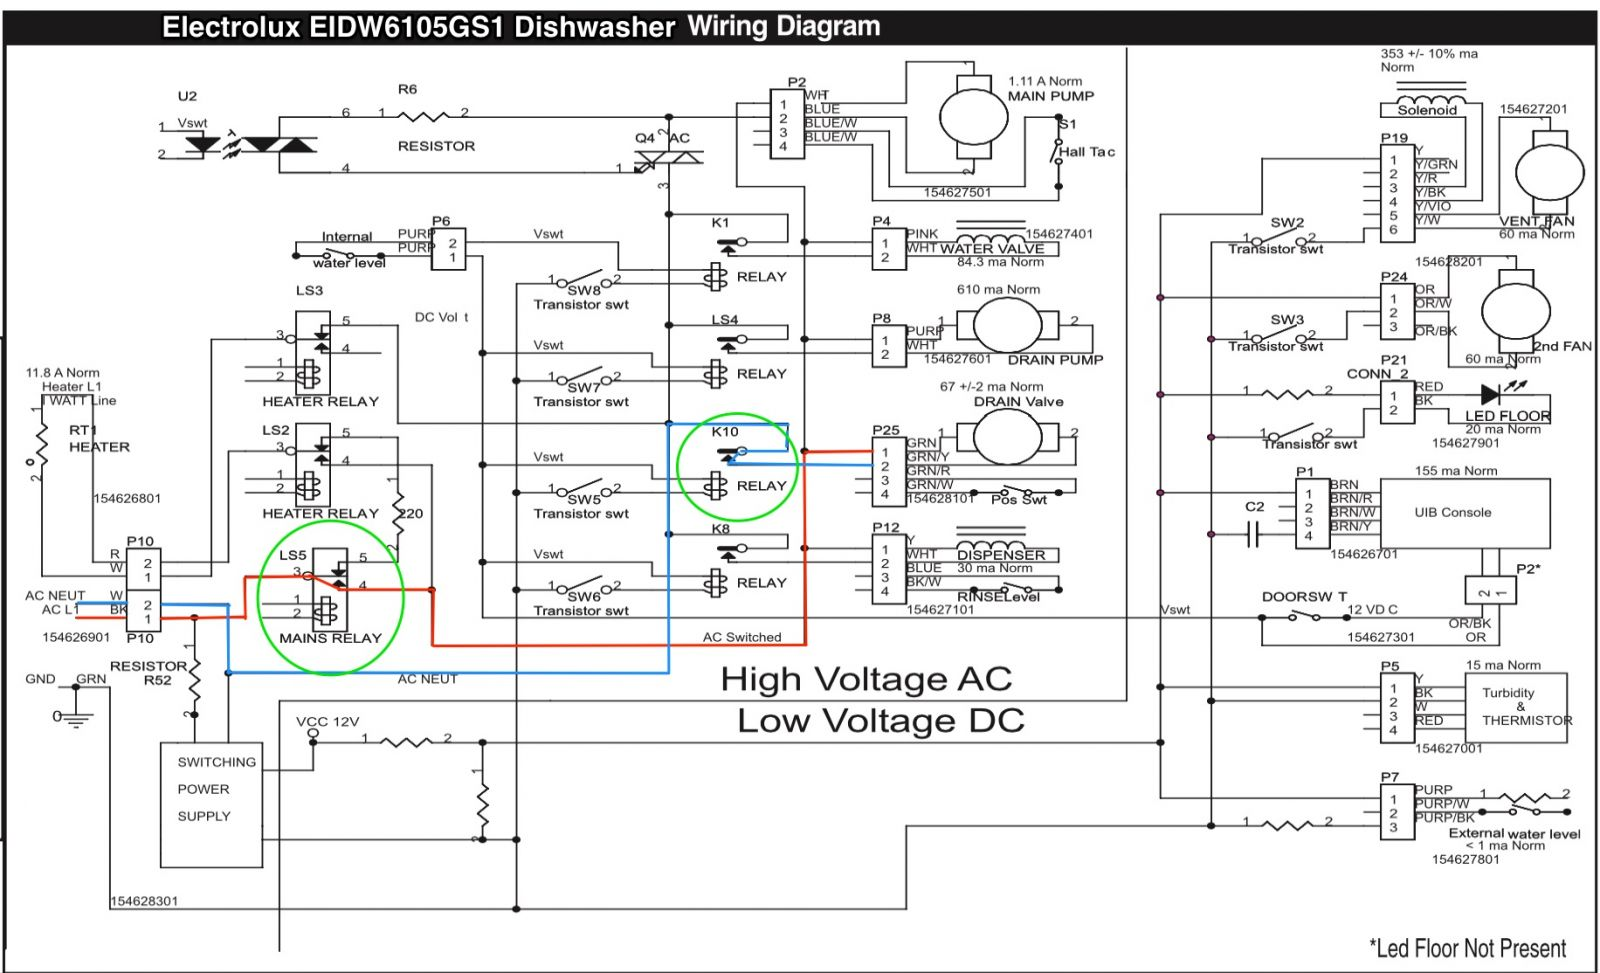 Wiring Diagram For Bosch Dishwasher from appliantology.org